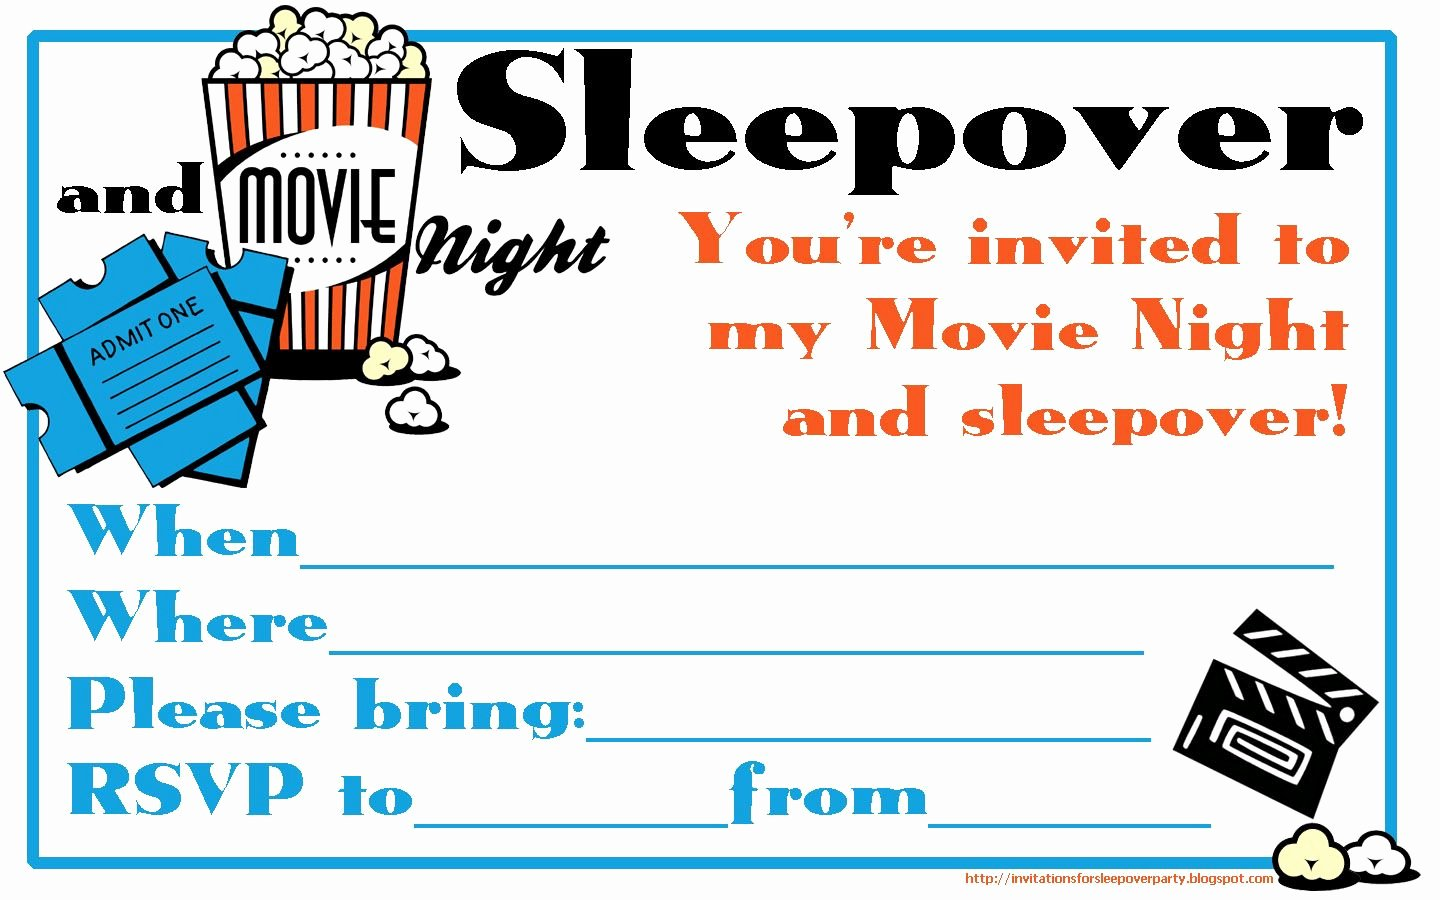 Slumber Party Invitations Templates Free Beautiful Fill the Blanks On This Movie Night and Sleepover Invitation and Send It to Your Friends Just